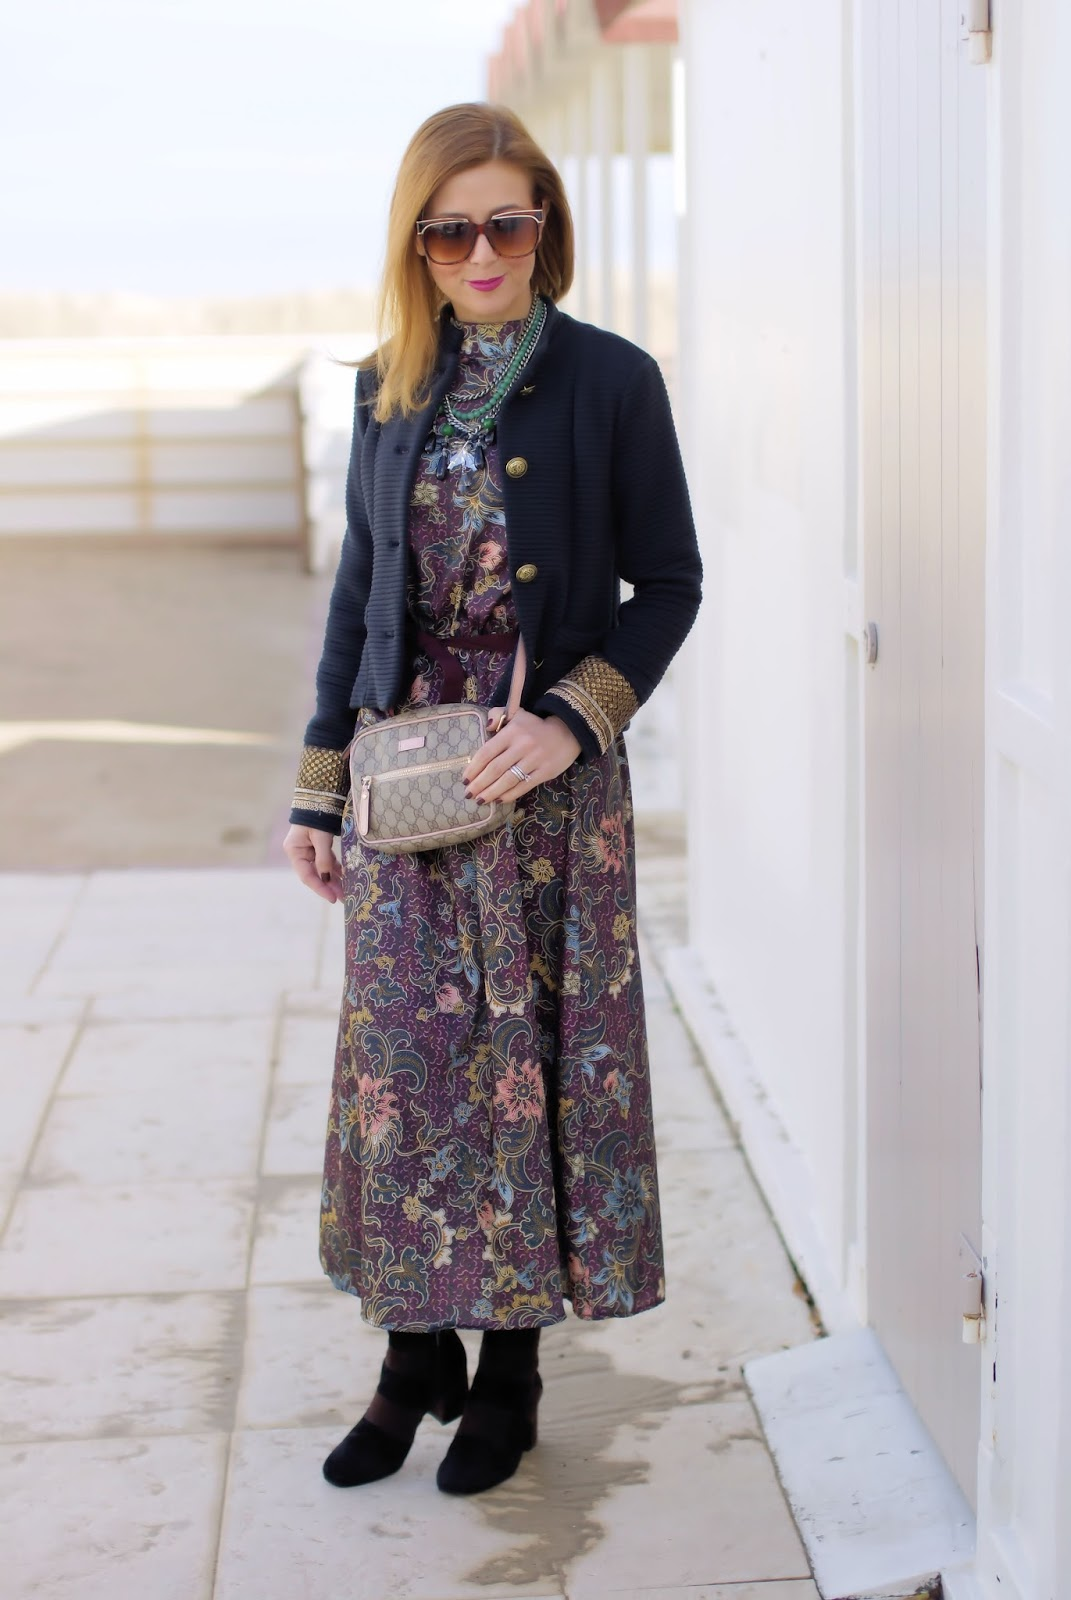 How To Wear A Floral Maxi Dress In Winter Fashion And